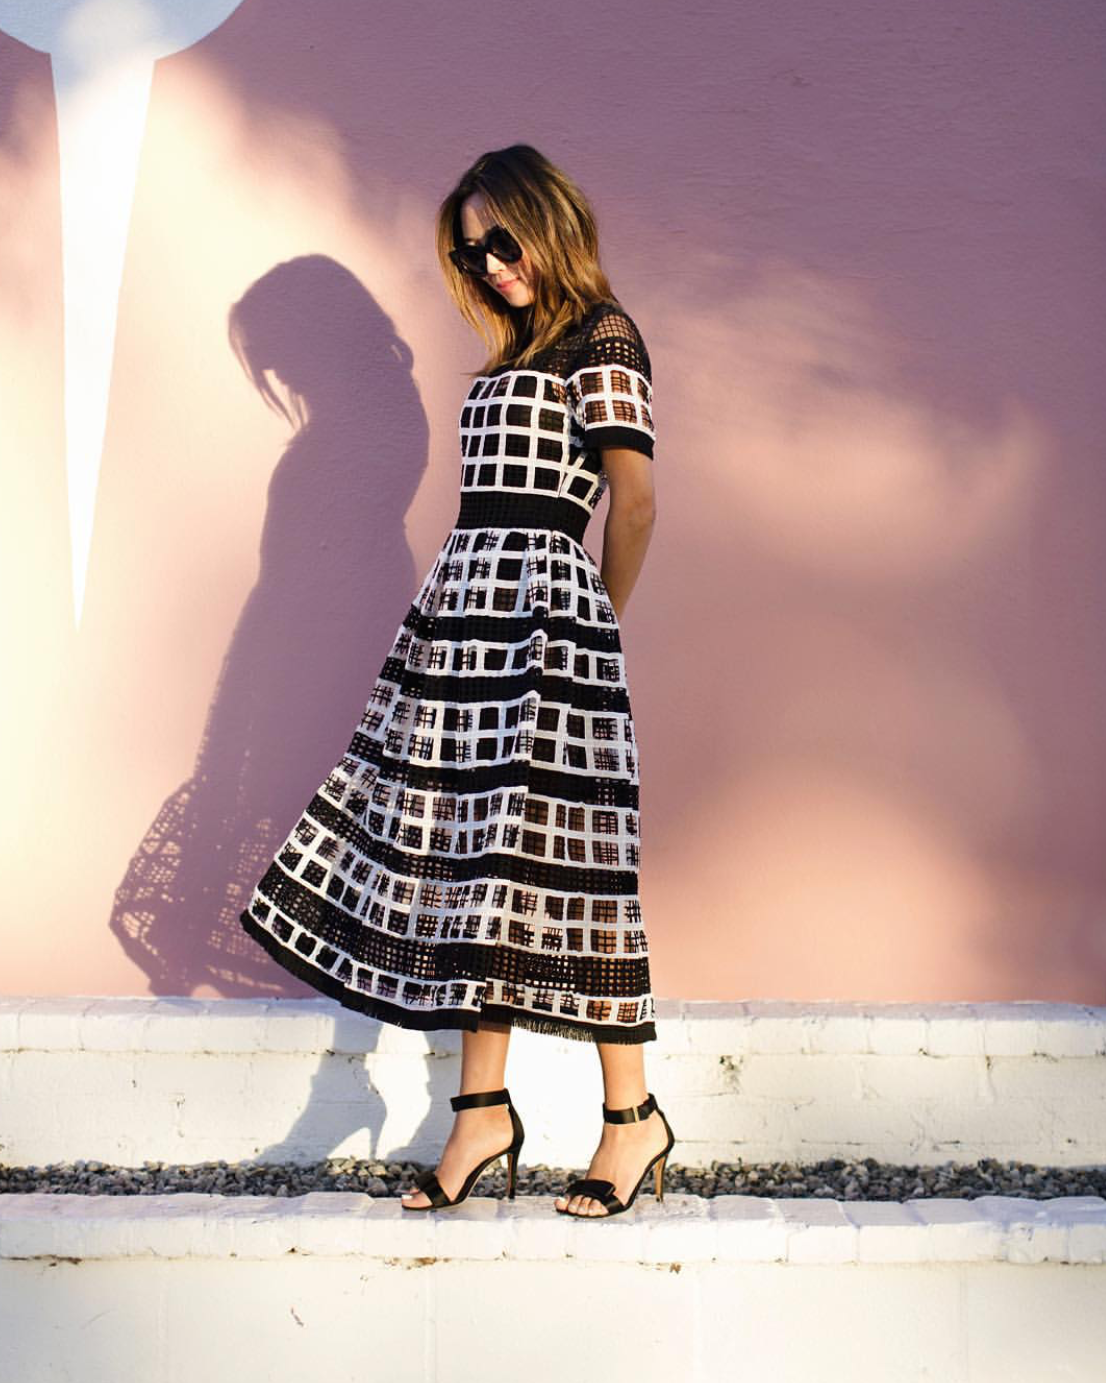 """Los Angeles:<a href=""""http://instagram.com/songofstyle/""""target=""""_blank""""> Aimee Song</a>"""